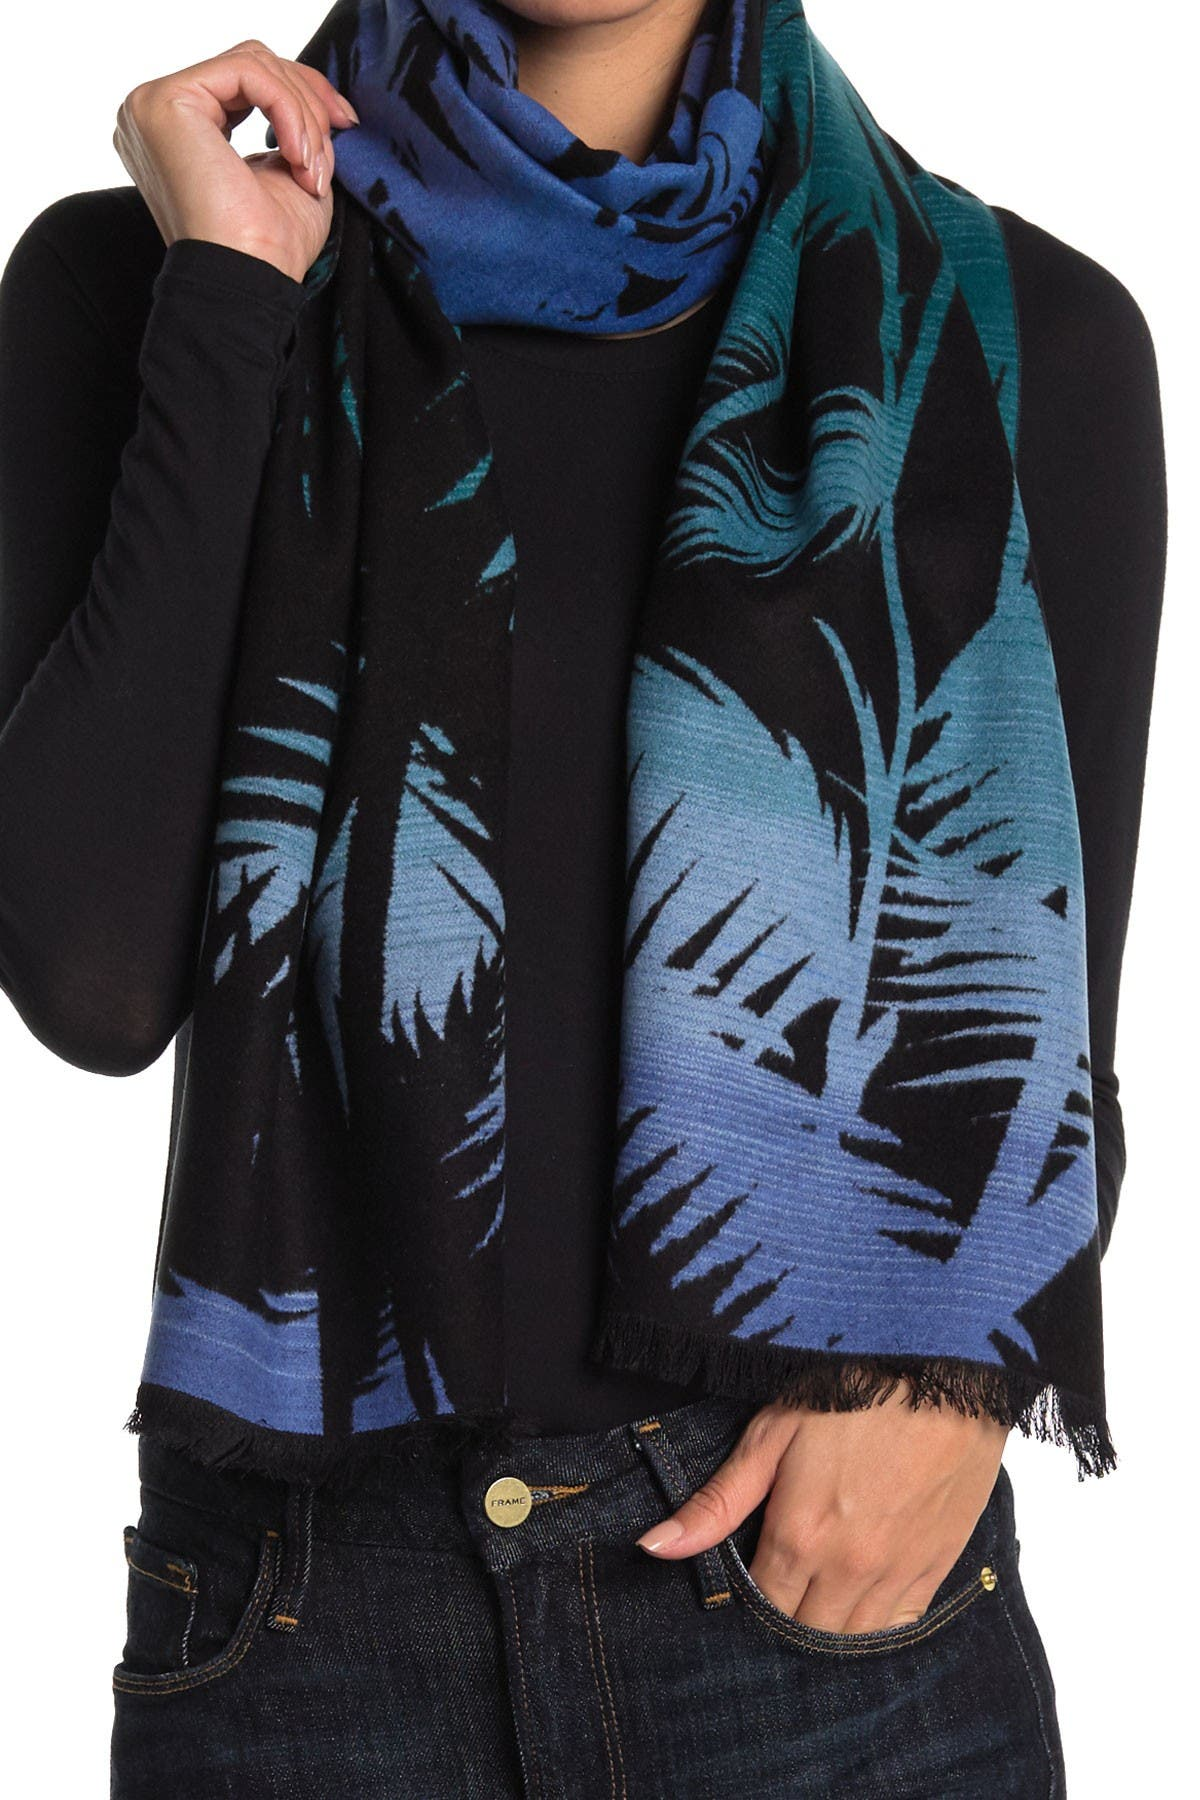 Image of Chelsey Imports Tropical Silk Scarf